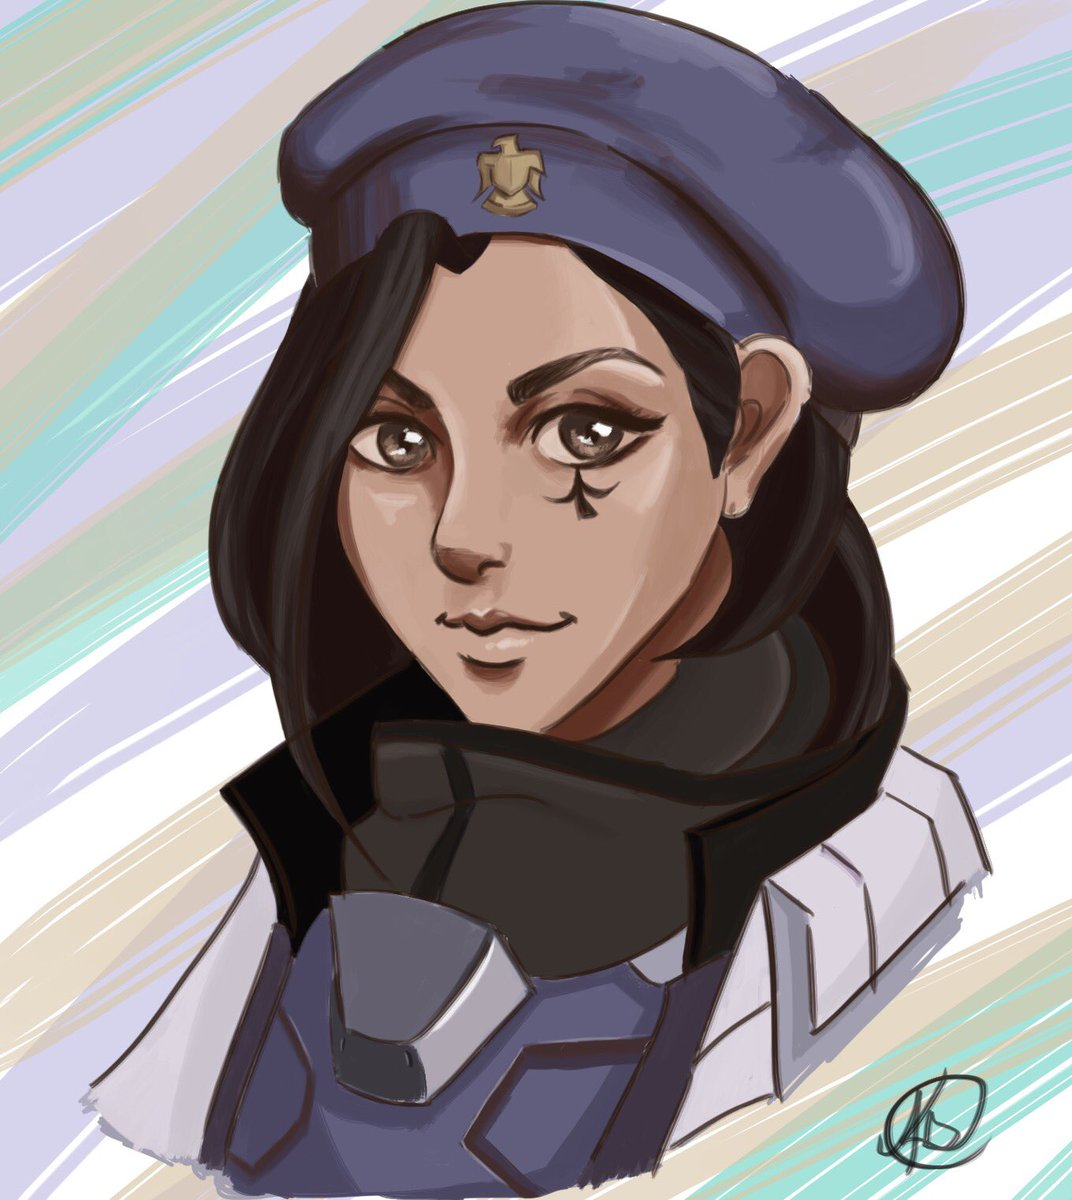 Doing the alphabet #art #challenge and this is my A! Ana Amari! @PlayOverwatch #Overwatch #digitalart #anaamari #gamedev #gameart<br>http://pic.twitter.com/l8RnPlZBXL